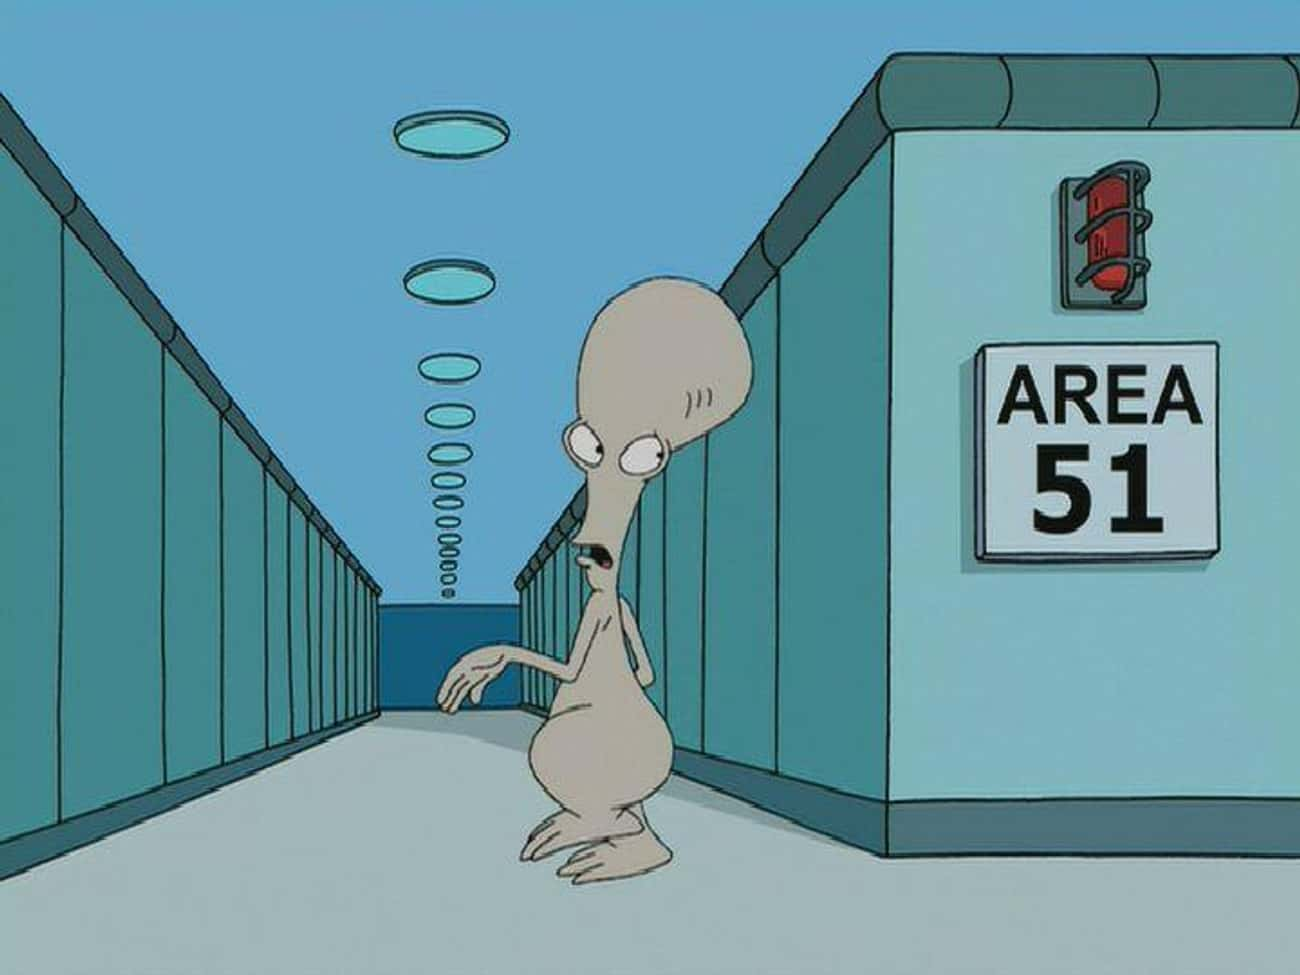 Roger Smith From 'American Dad!'